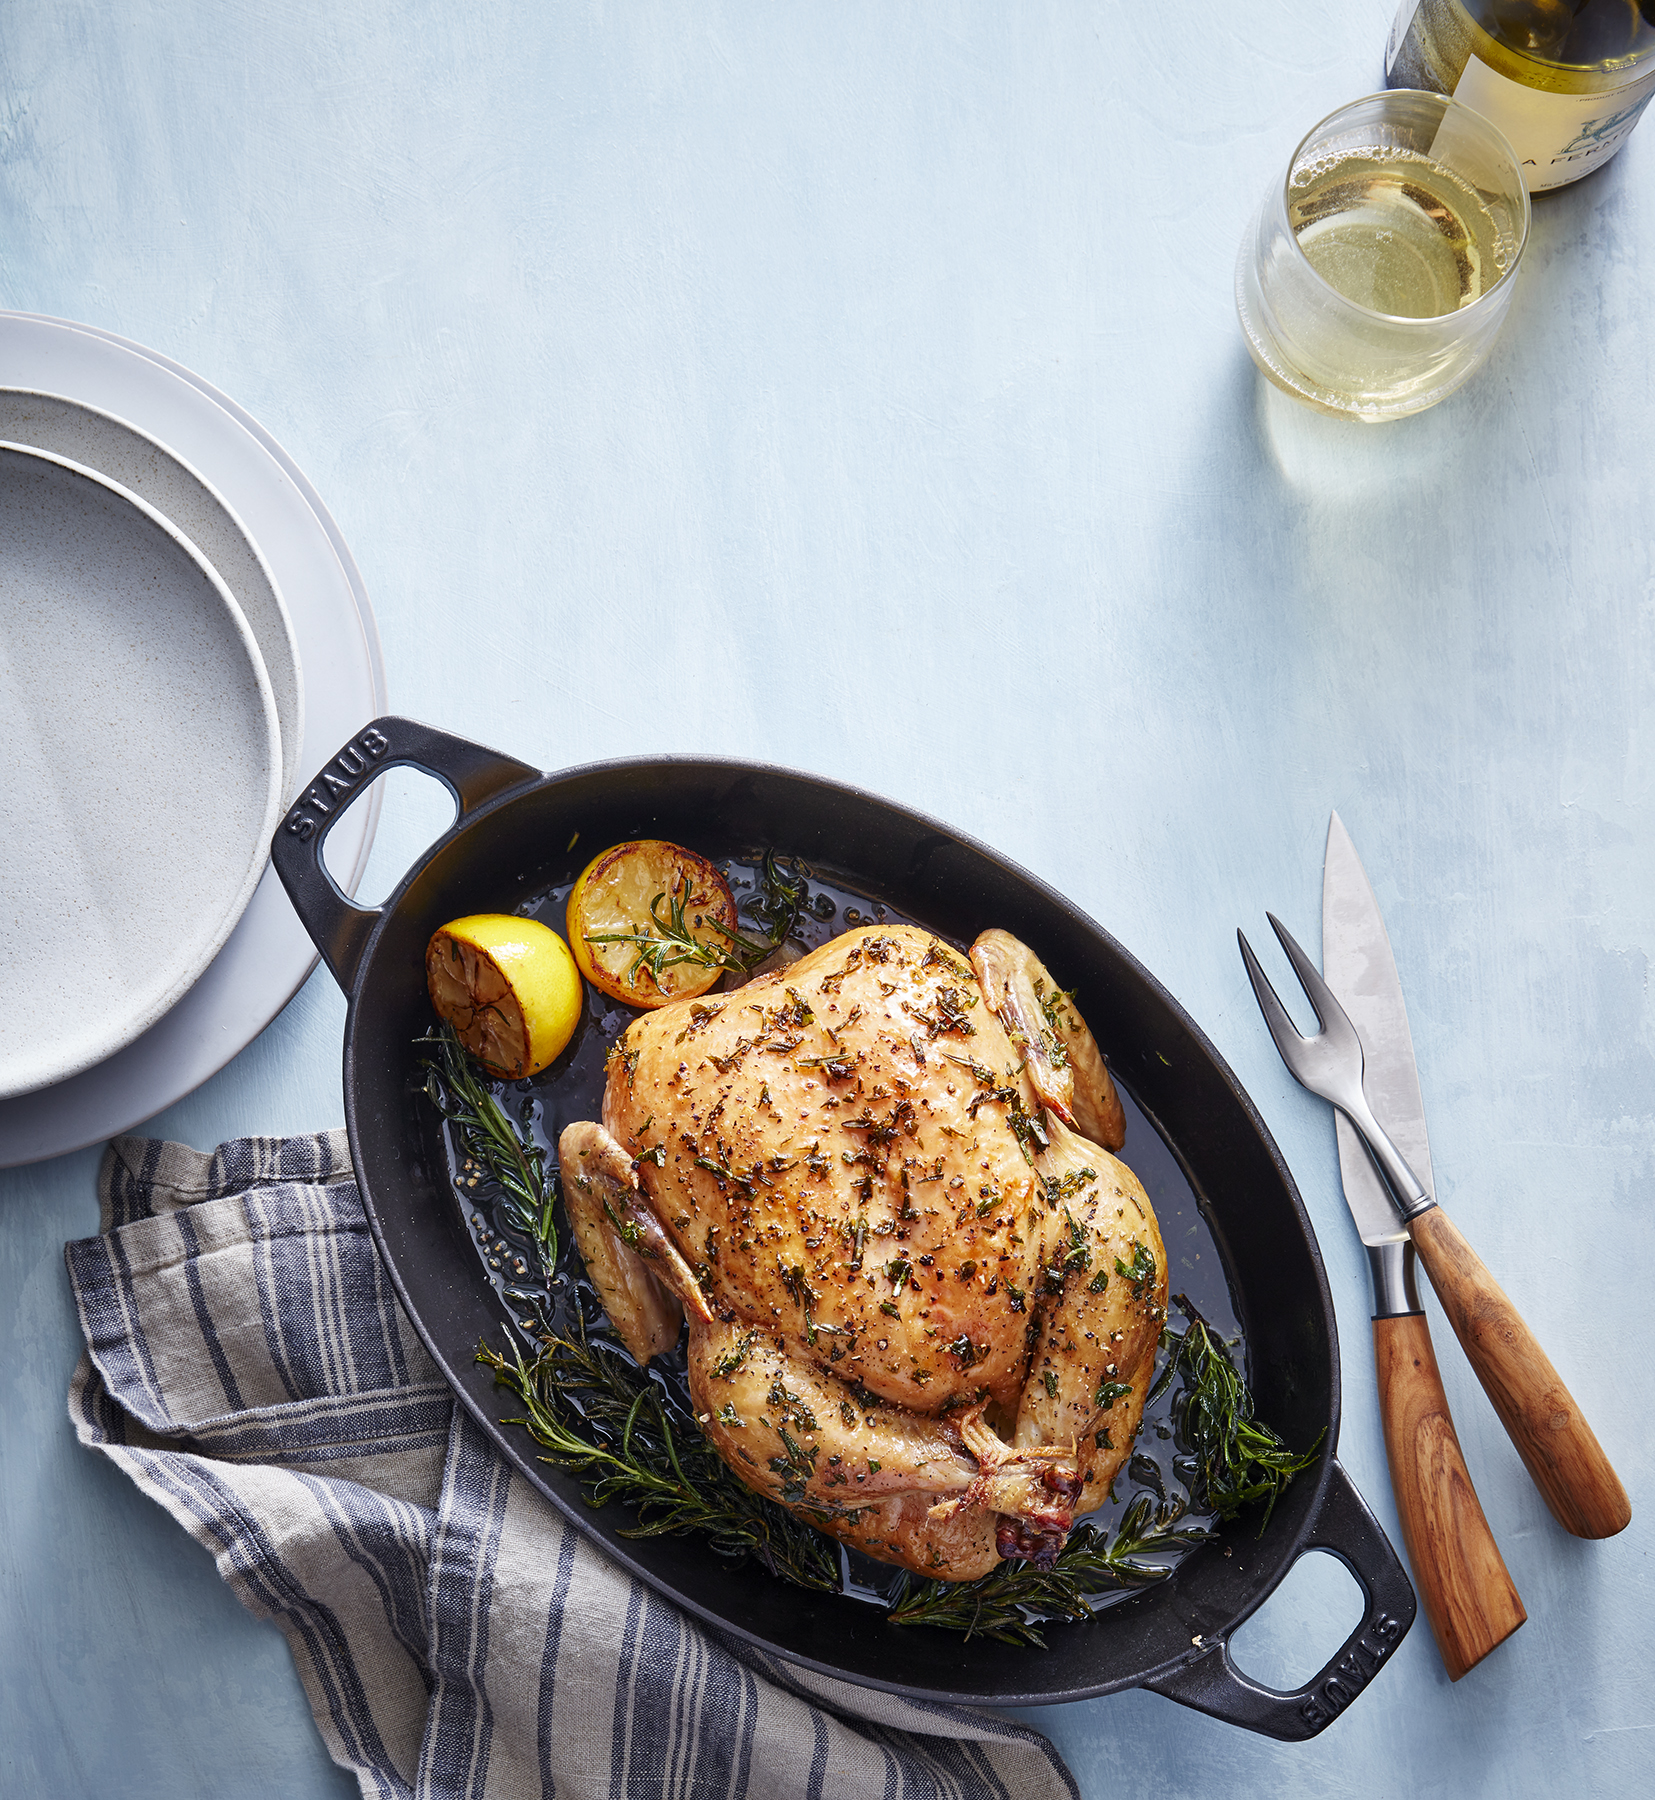 Slow-Roasted Lemon Herb Chicken